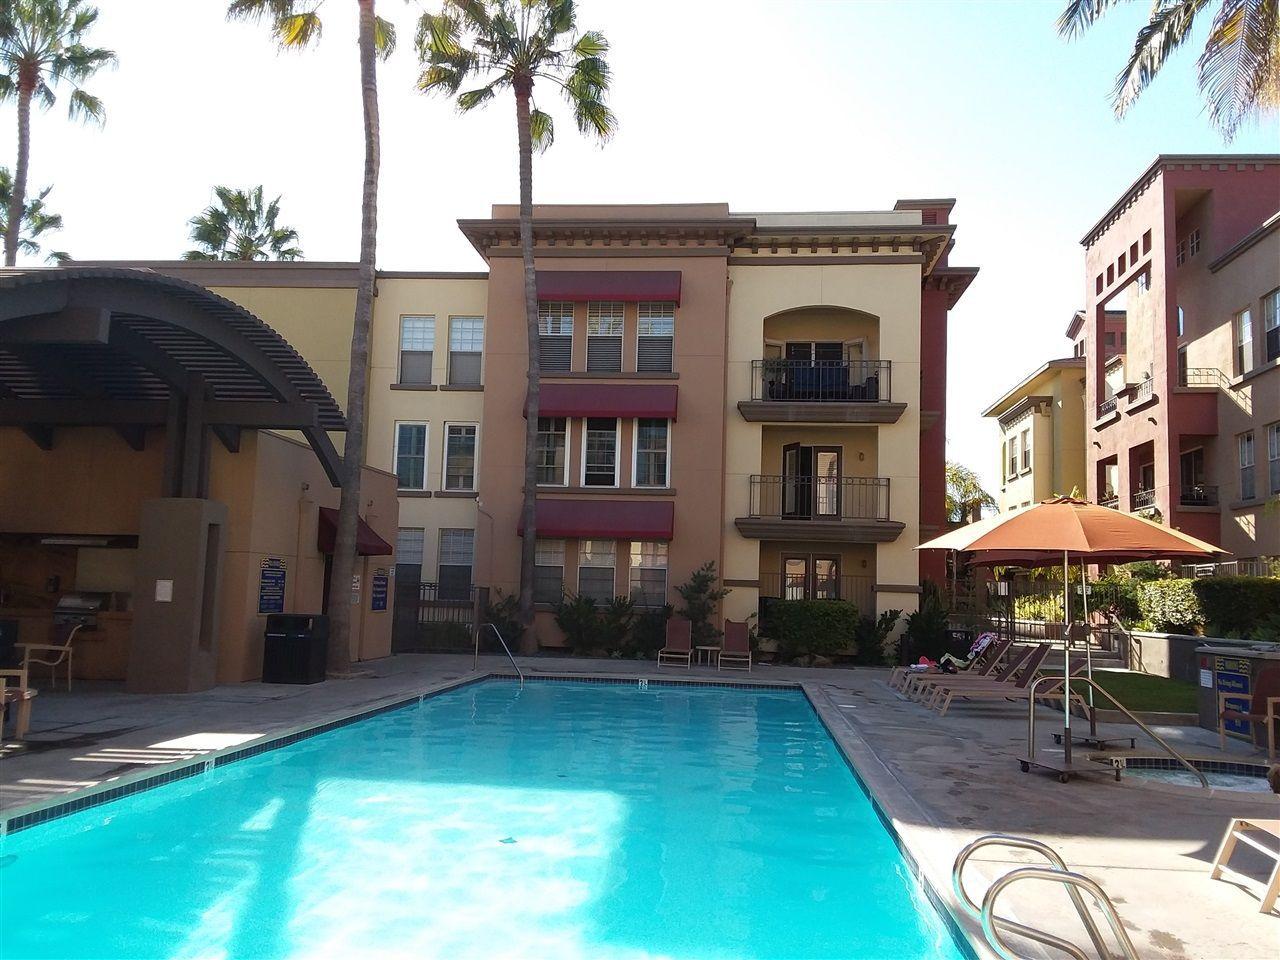 Main Photo: HILLCREST Condo for sale : 2 bedrooms : 1270 Cleveland Ave #A332 in San Diego